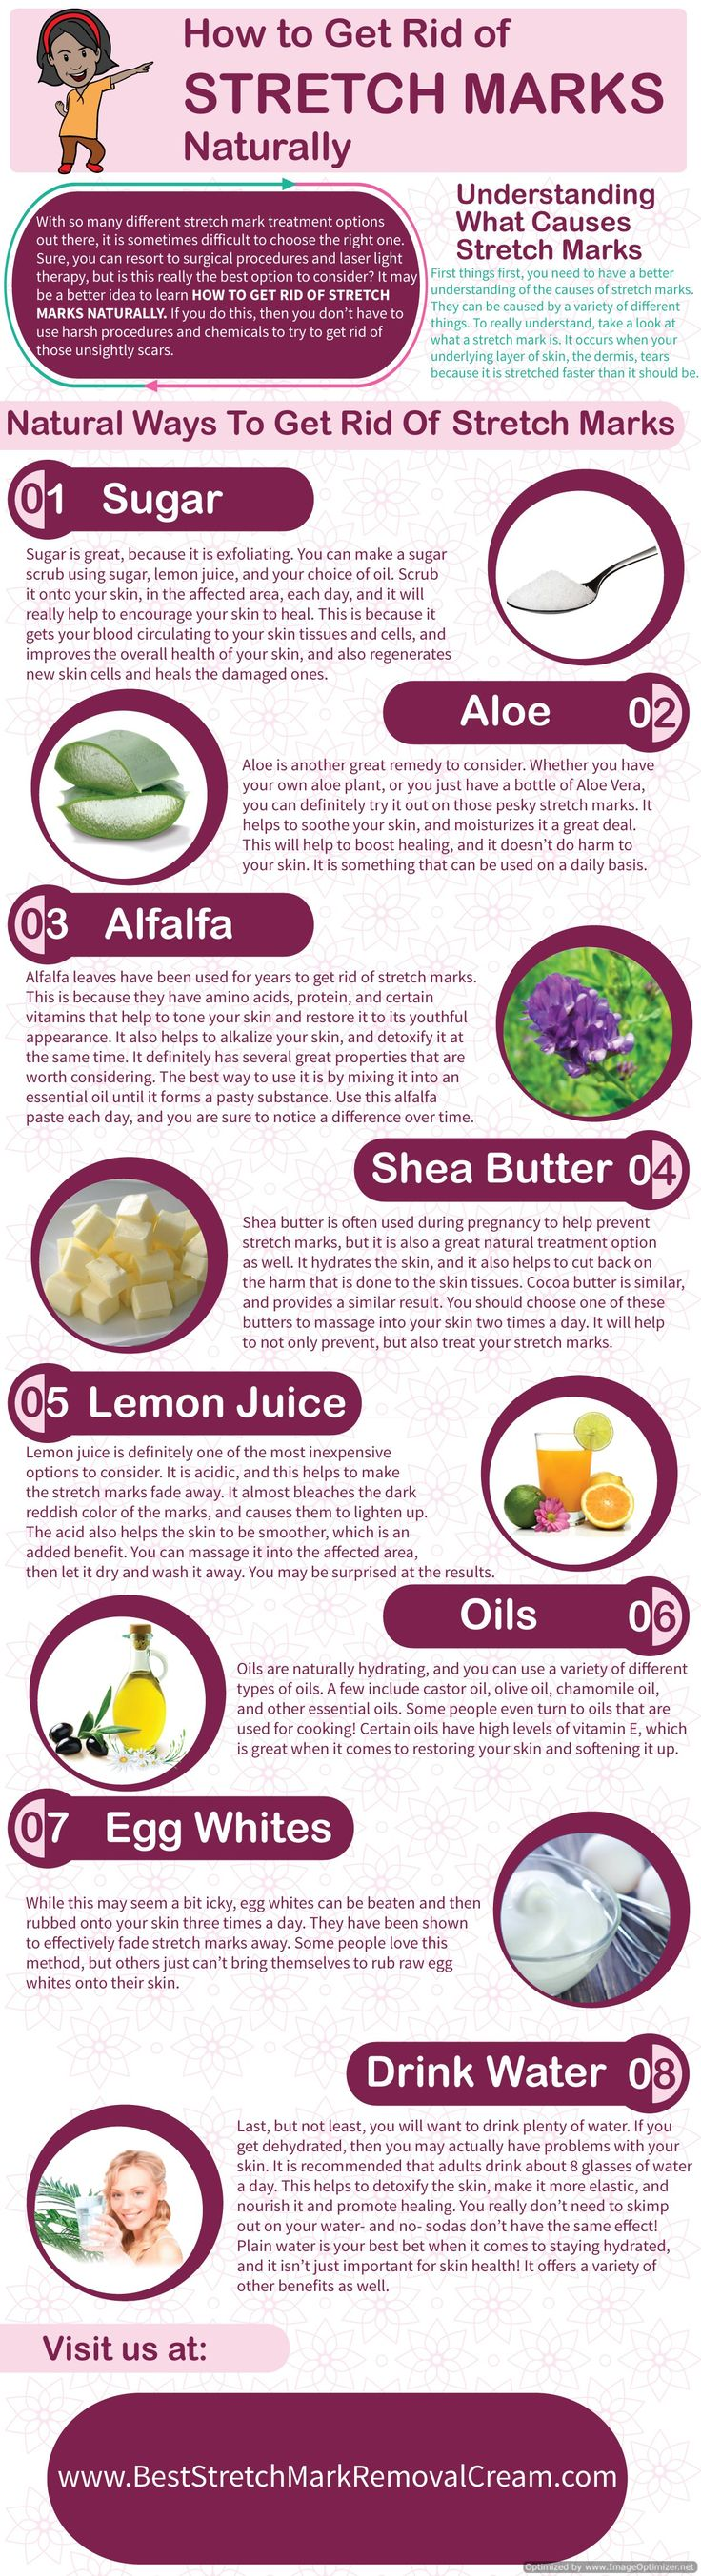 If you are looking for a way to get rid of your stretch marks, but don't want to turn to invasive procedures, then you are in luck. Here are a few ways to get rid of them naturally, and effectively. *** Obviously, all my vegan friends can skip the egg whites ***